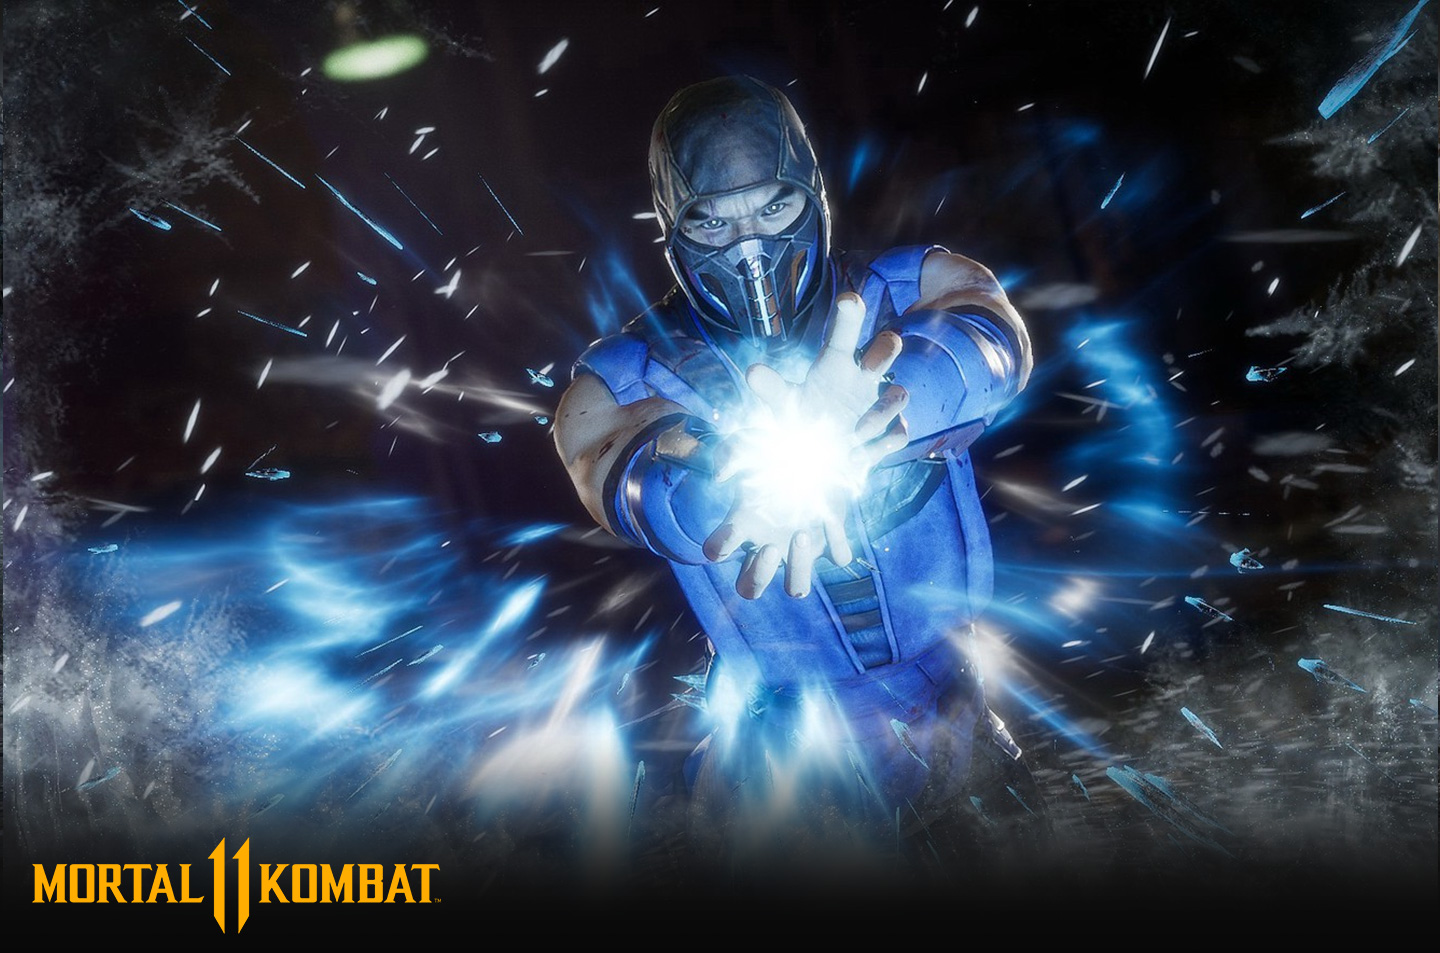 Sistem-tarung-Alasan-Mortal-Kombat-11-Bisa-Jadi-Game-Fighting-PC-Favorit-Para-Gamer